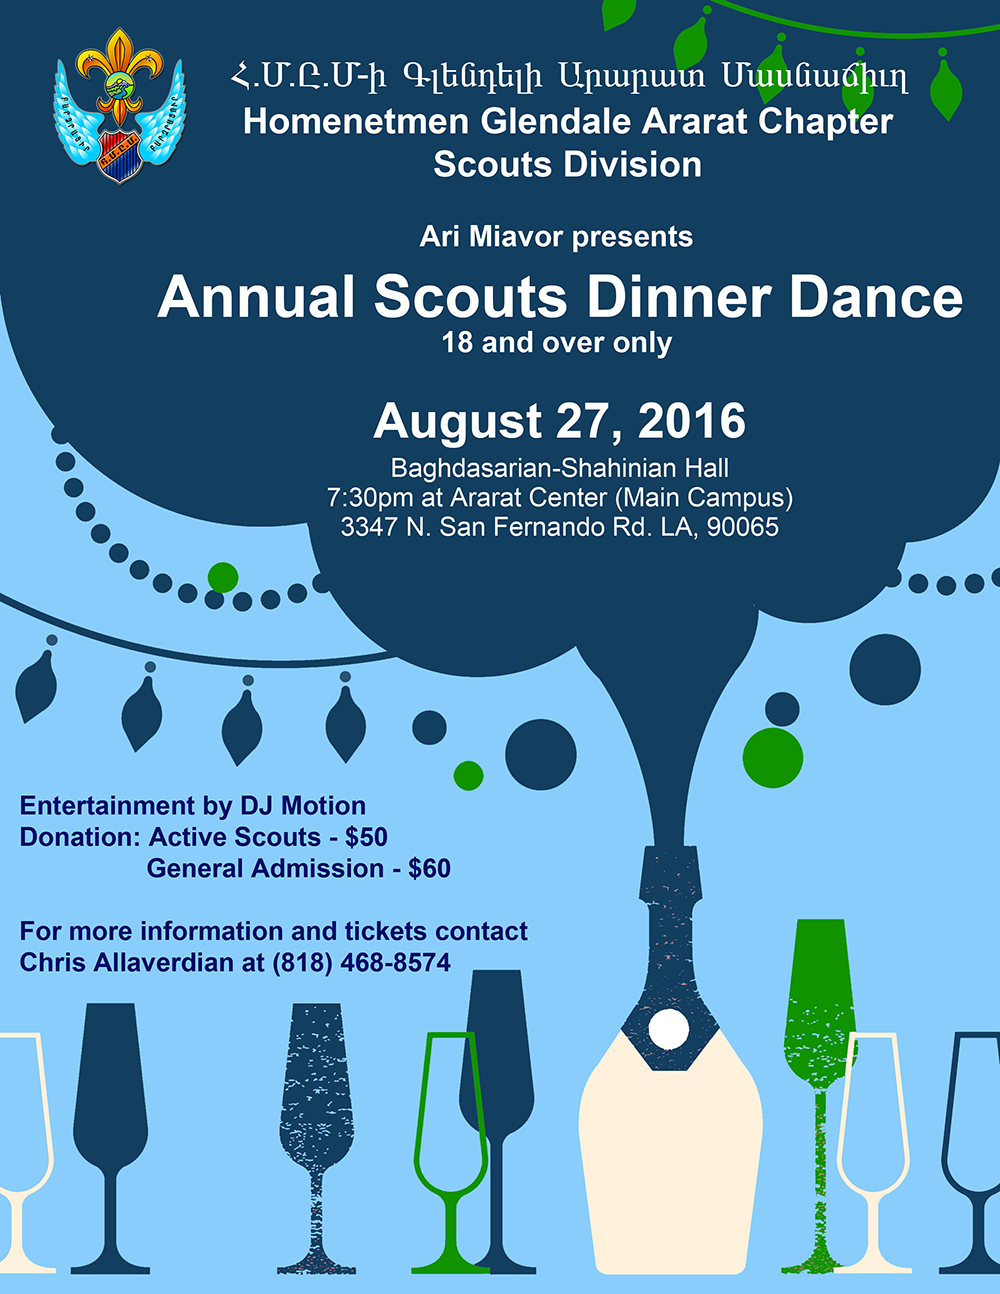 Annual Scouts Dinner Dance